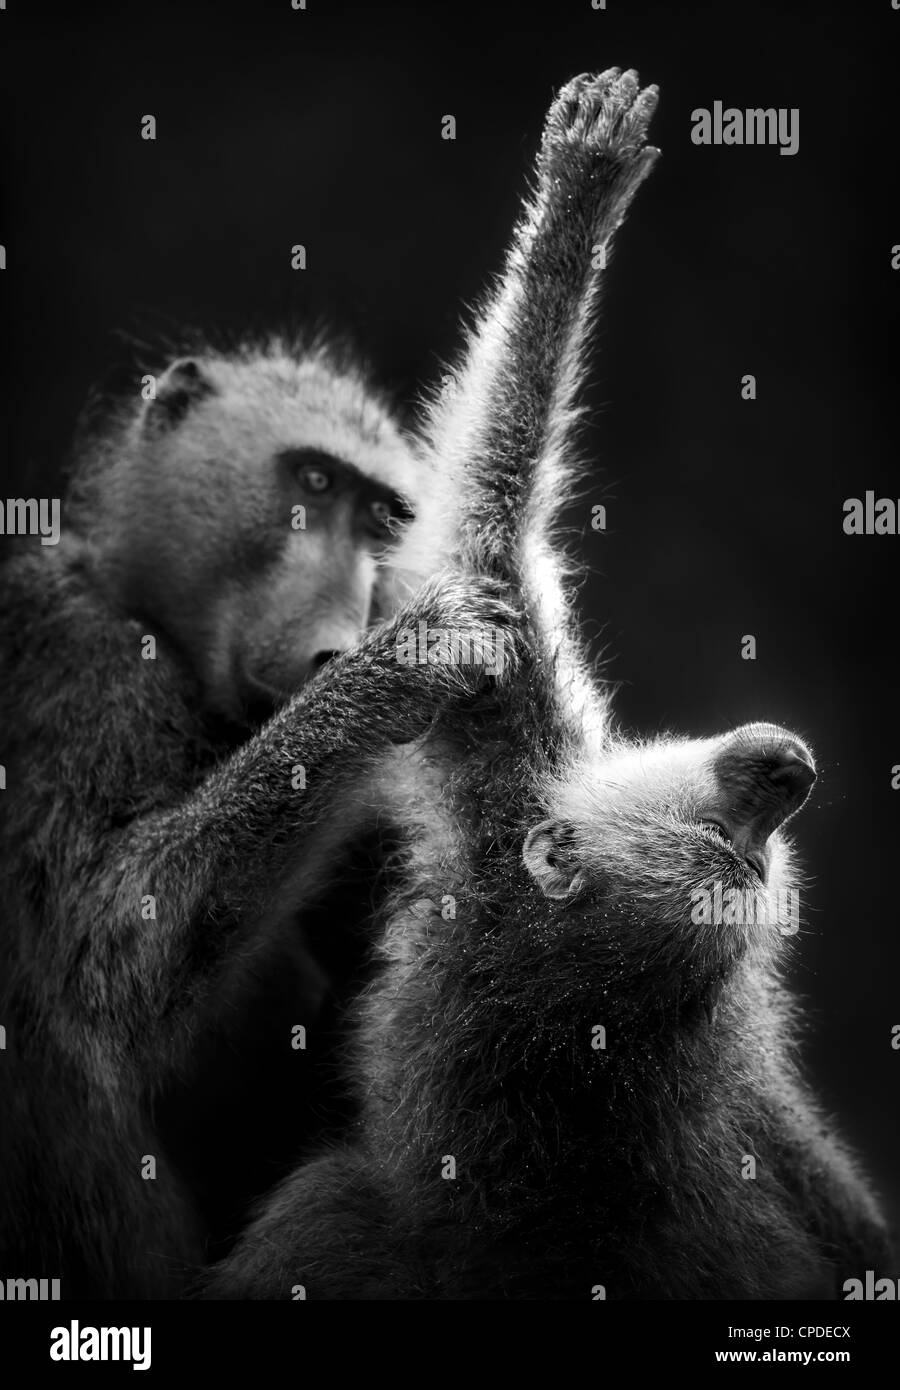 Baboons grooming (Artistic processing) - Stock Image